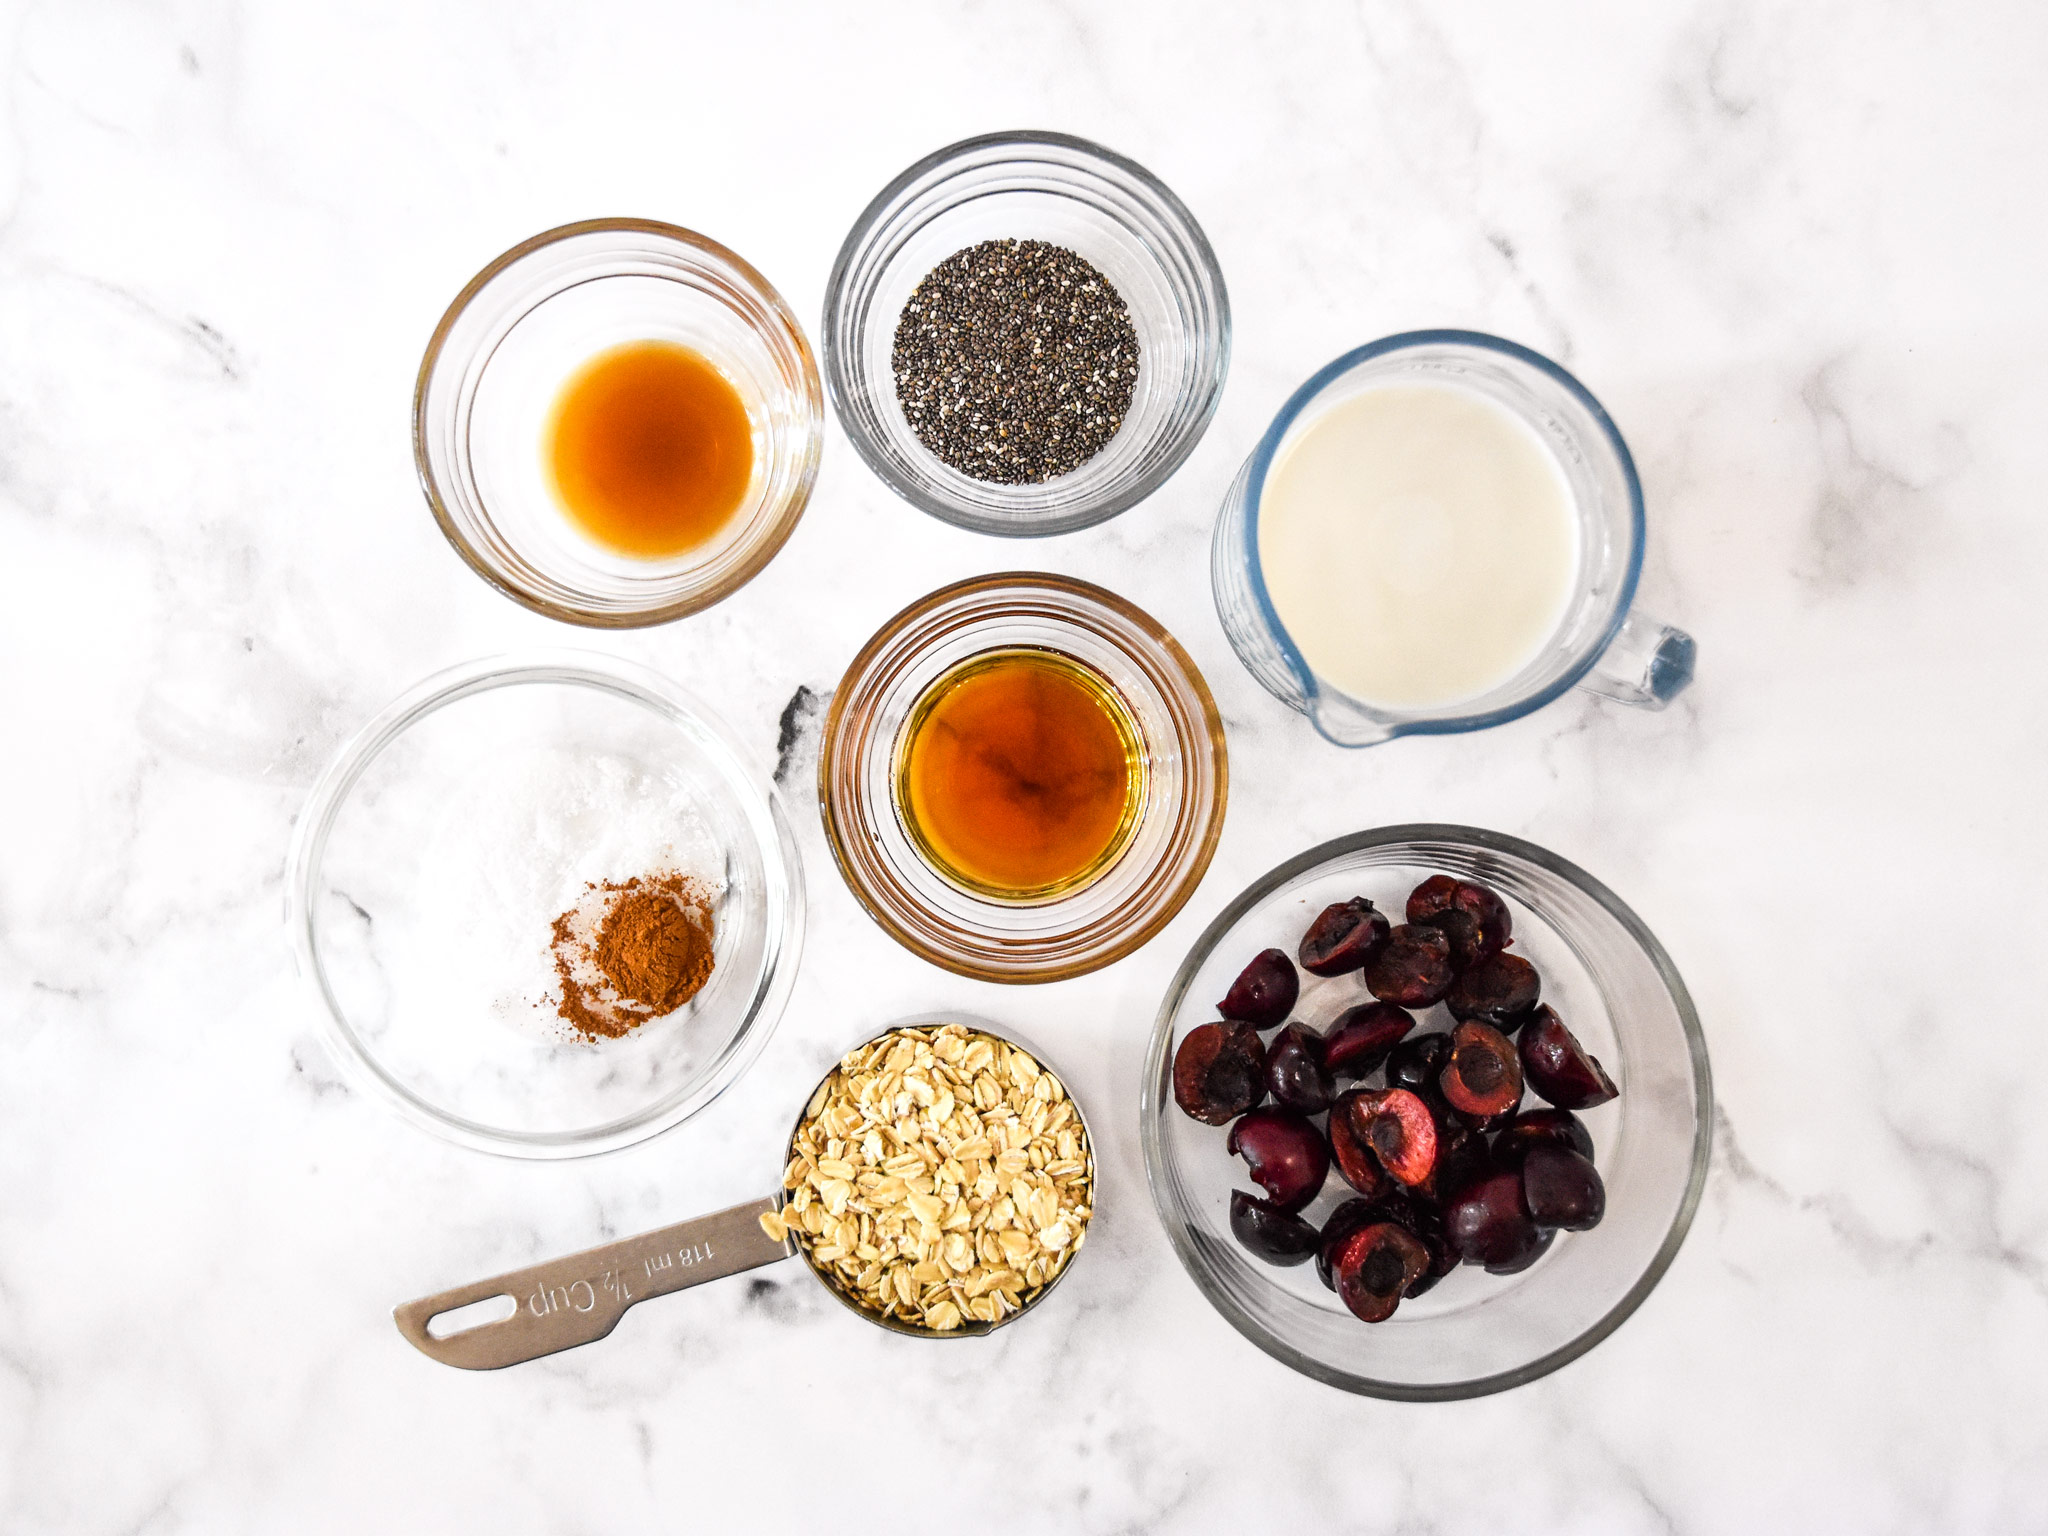 ingredients in bowls for the cherry vanilla overnight oats.